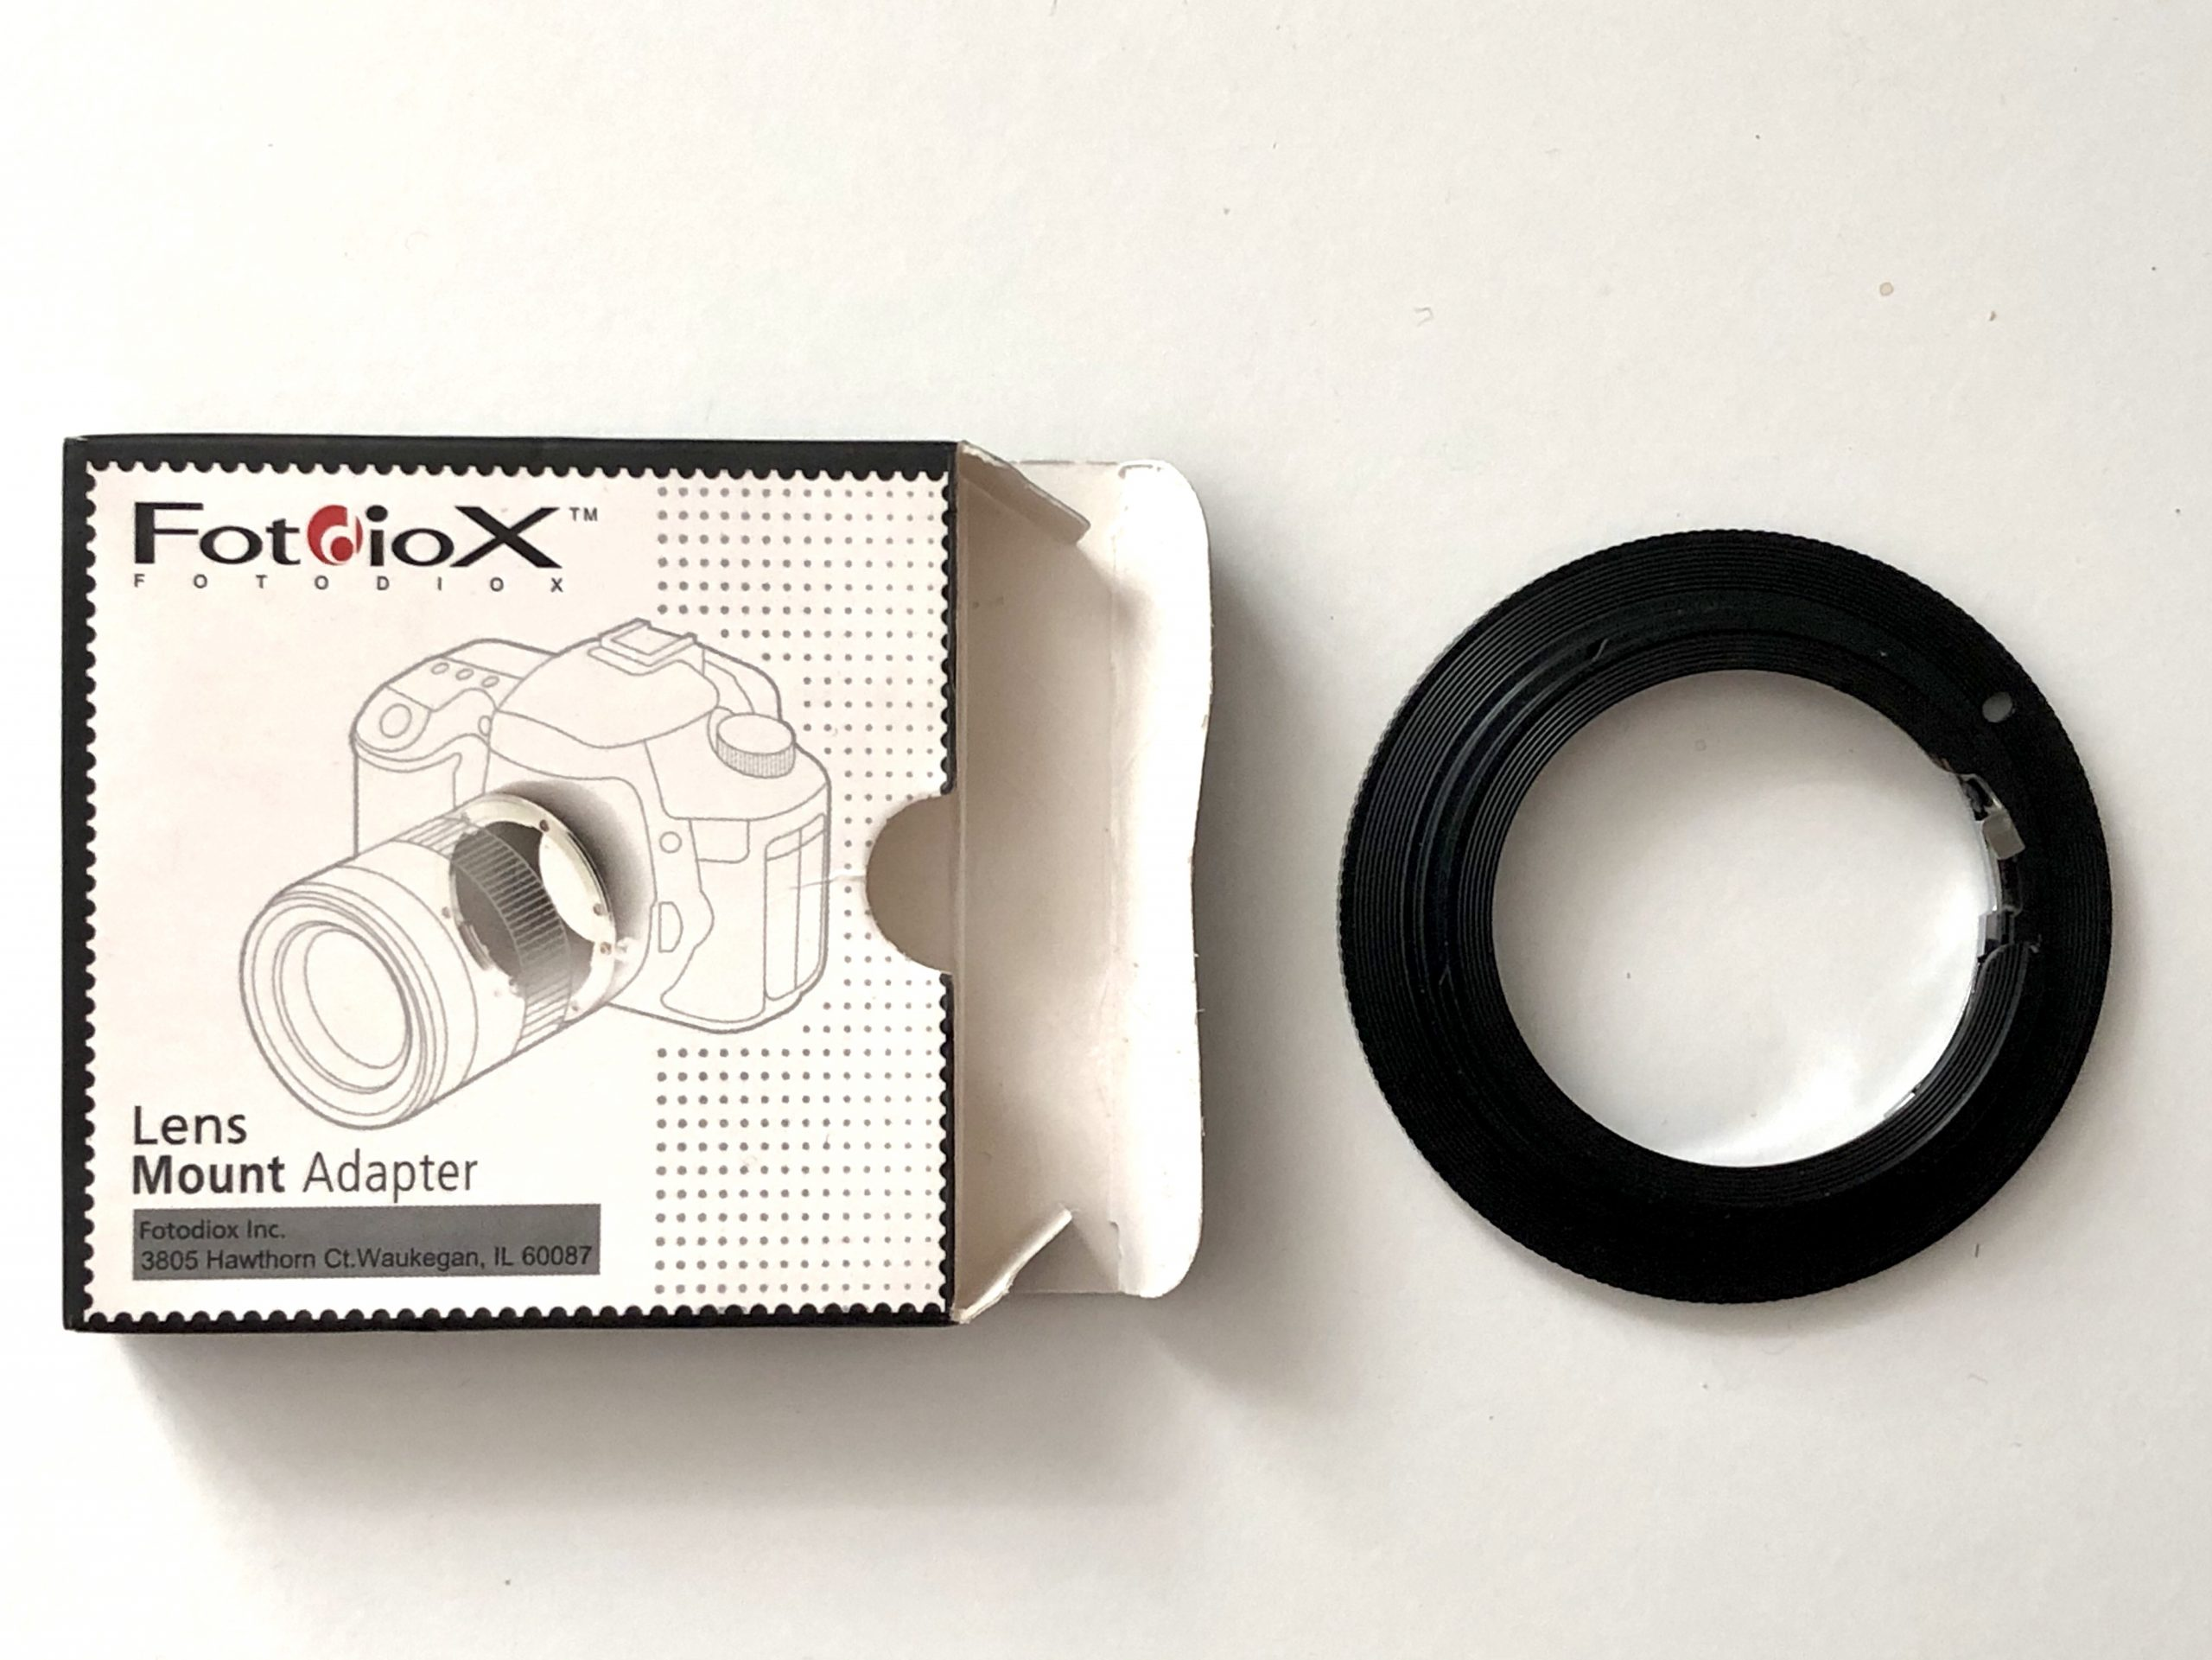 Fotodiox Pro Lens Mount Adapter - Nikon, Nikkor Lens to any Canon EOS EF/EF-S Mount Camera. for Sale